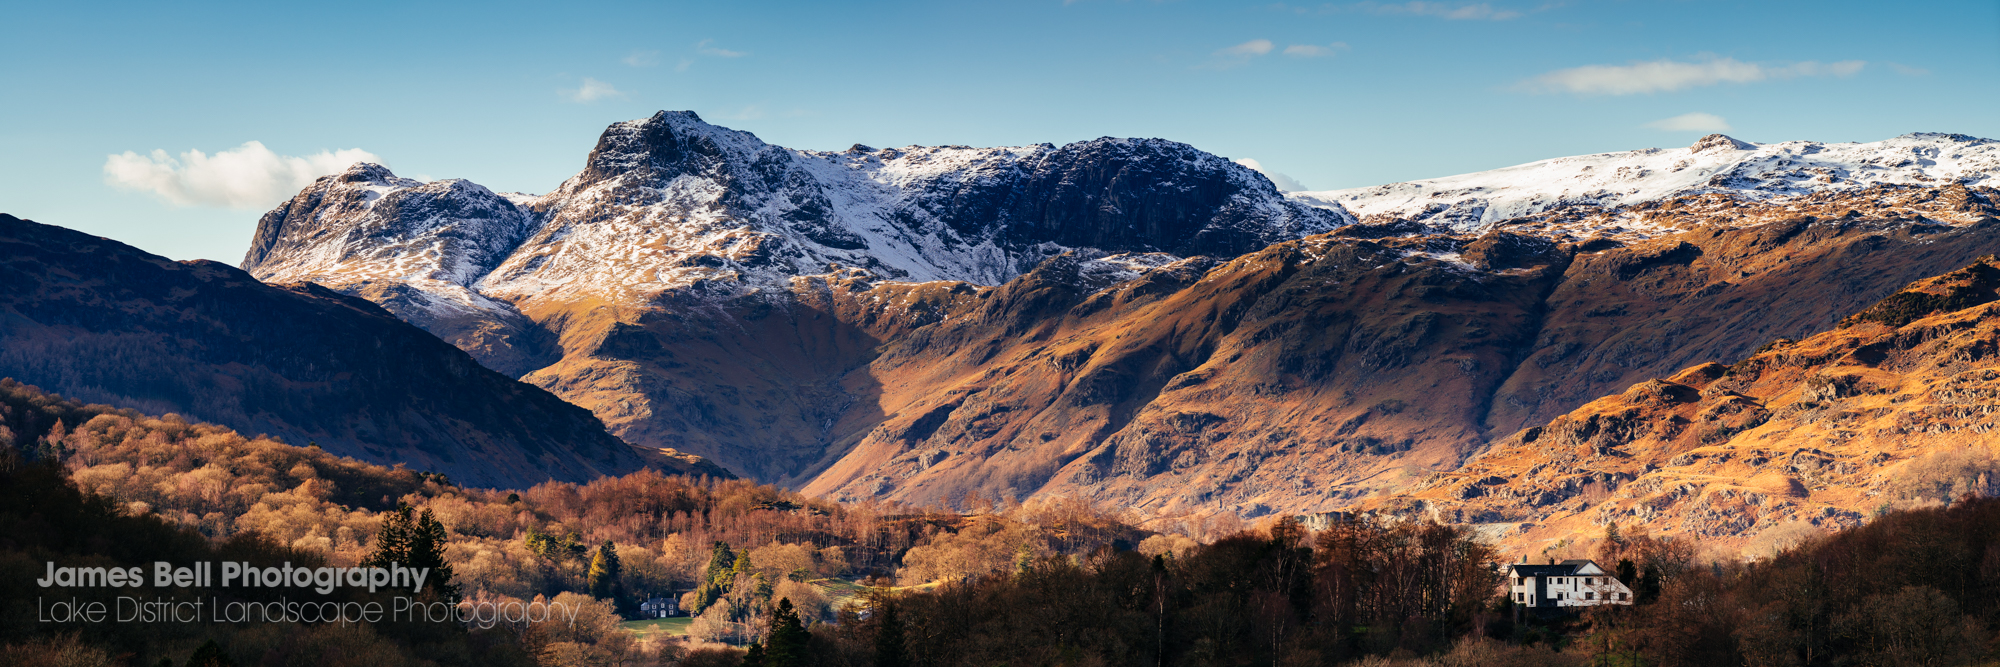 Langdale Pikes Landscape Photography Print for sale